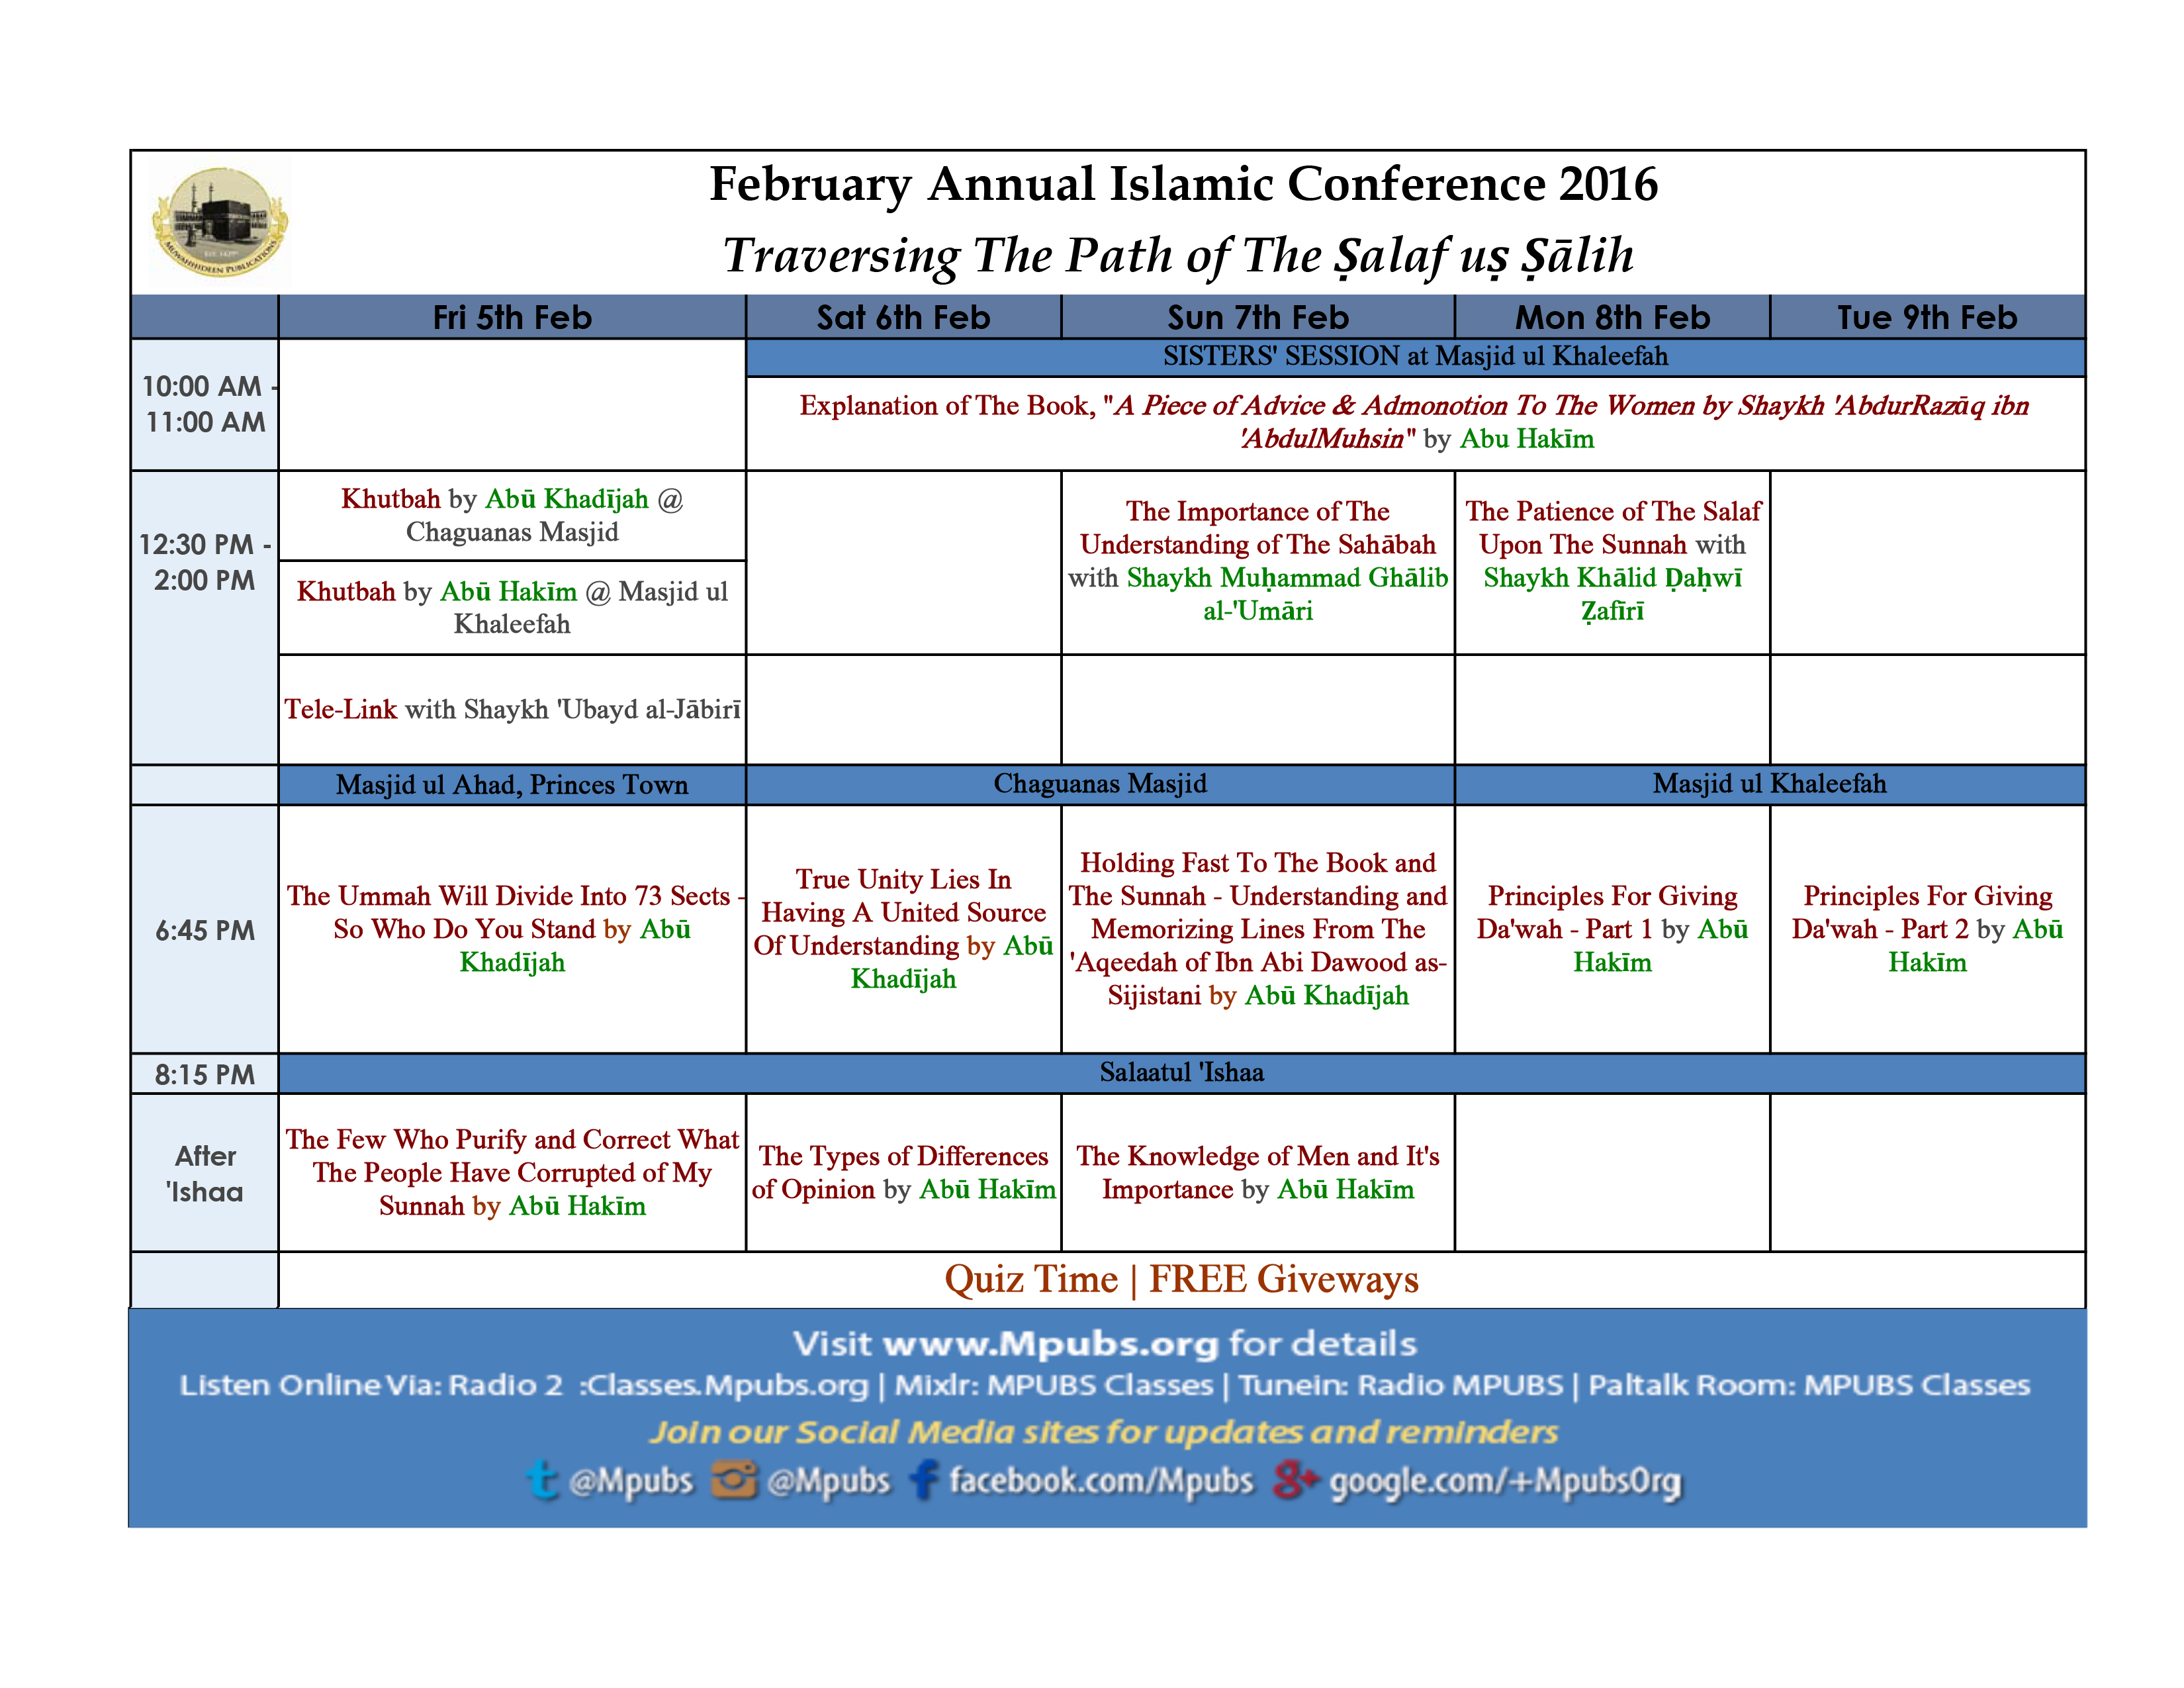 Conference 20160205 traversing the path of the salaf schedule